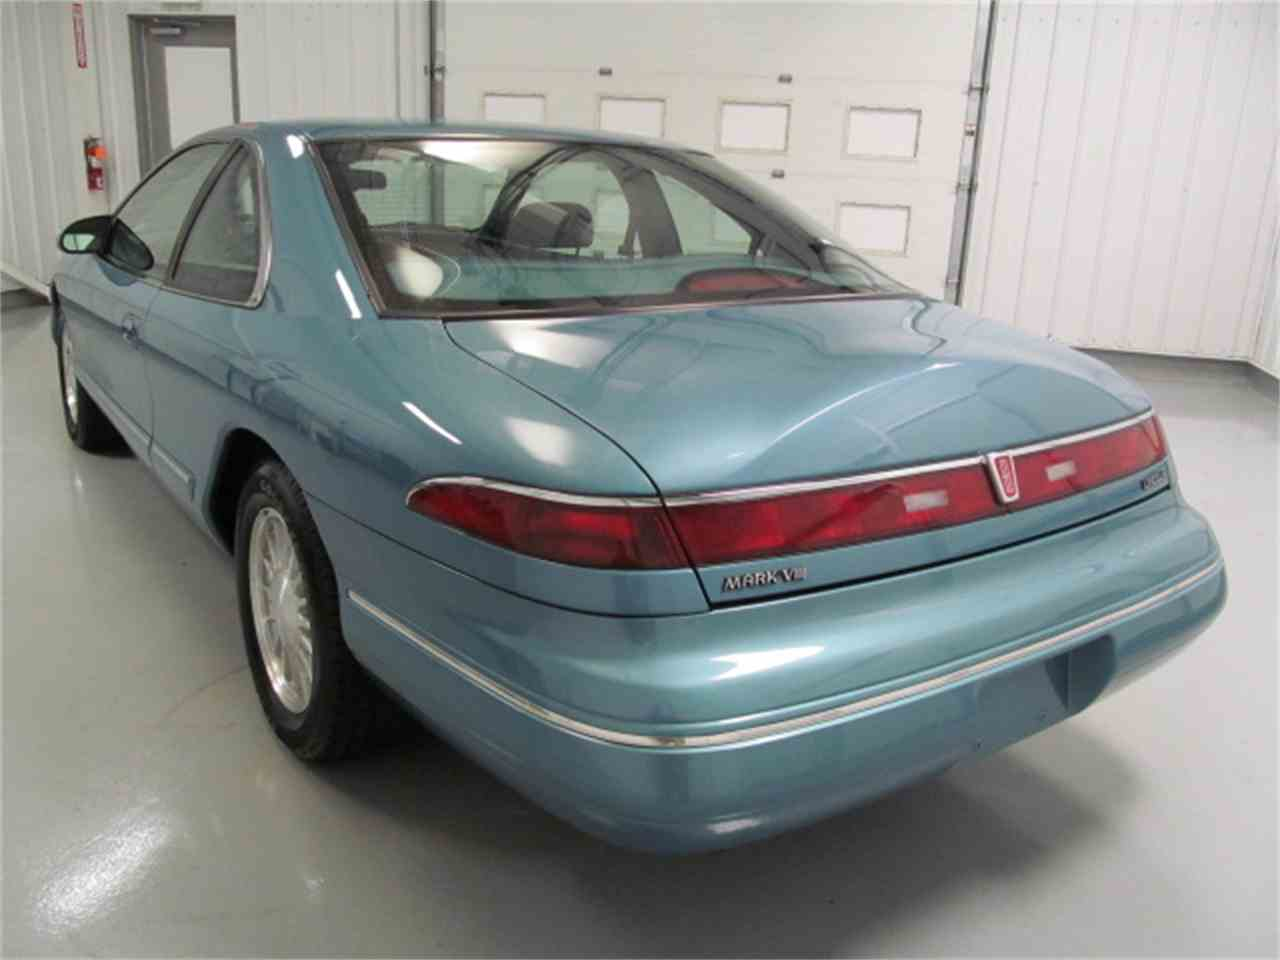 Large Picture of 1993 Mark VIII Offered by Duncan Imports & Classic Cars - JL9Z